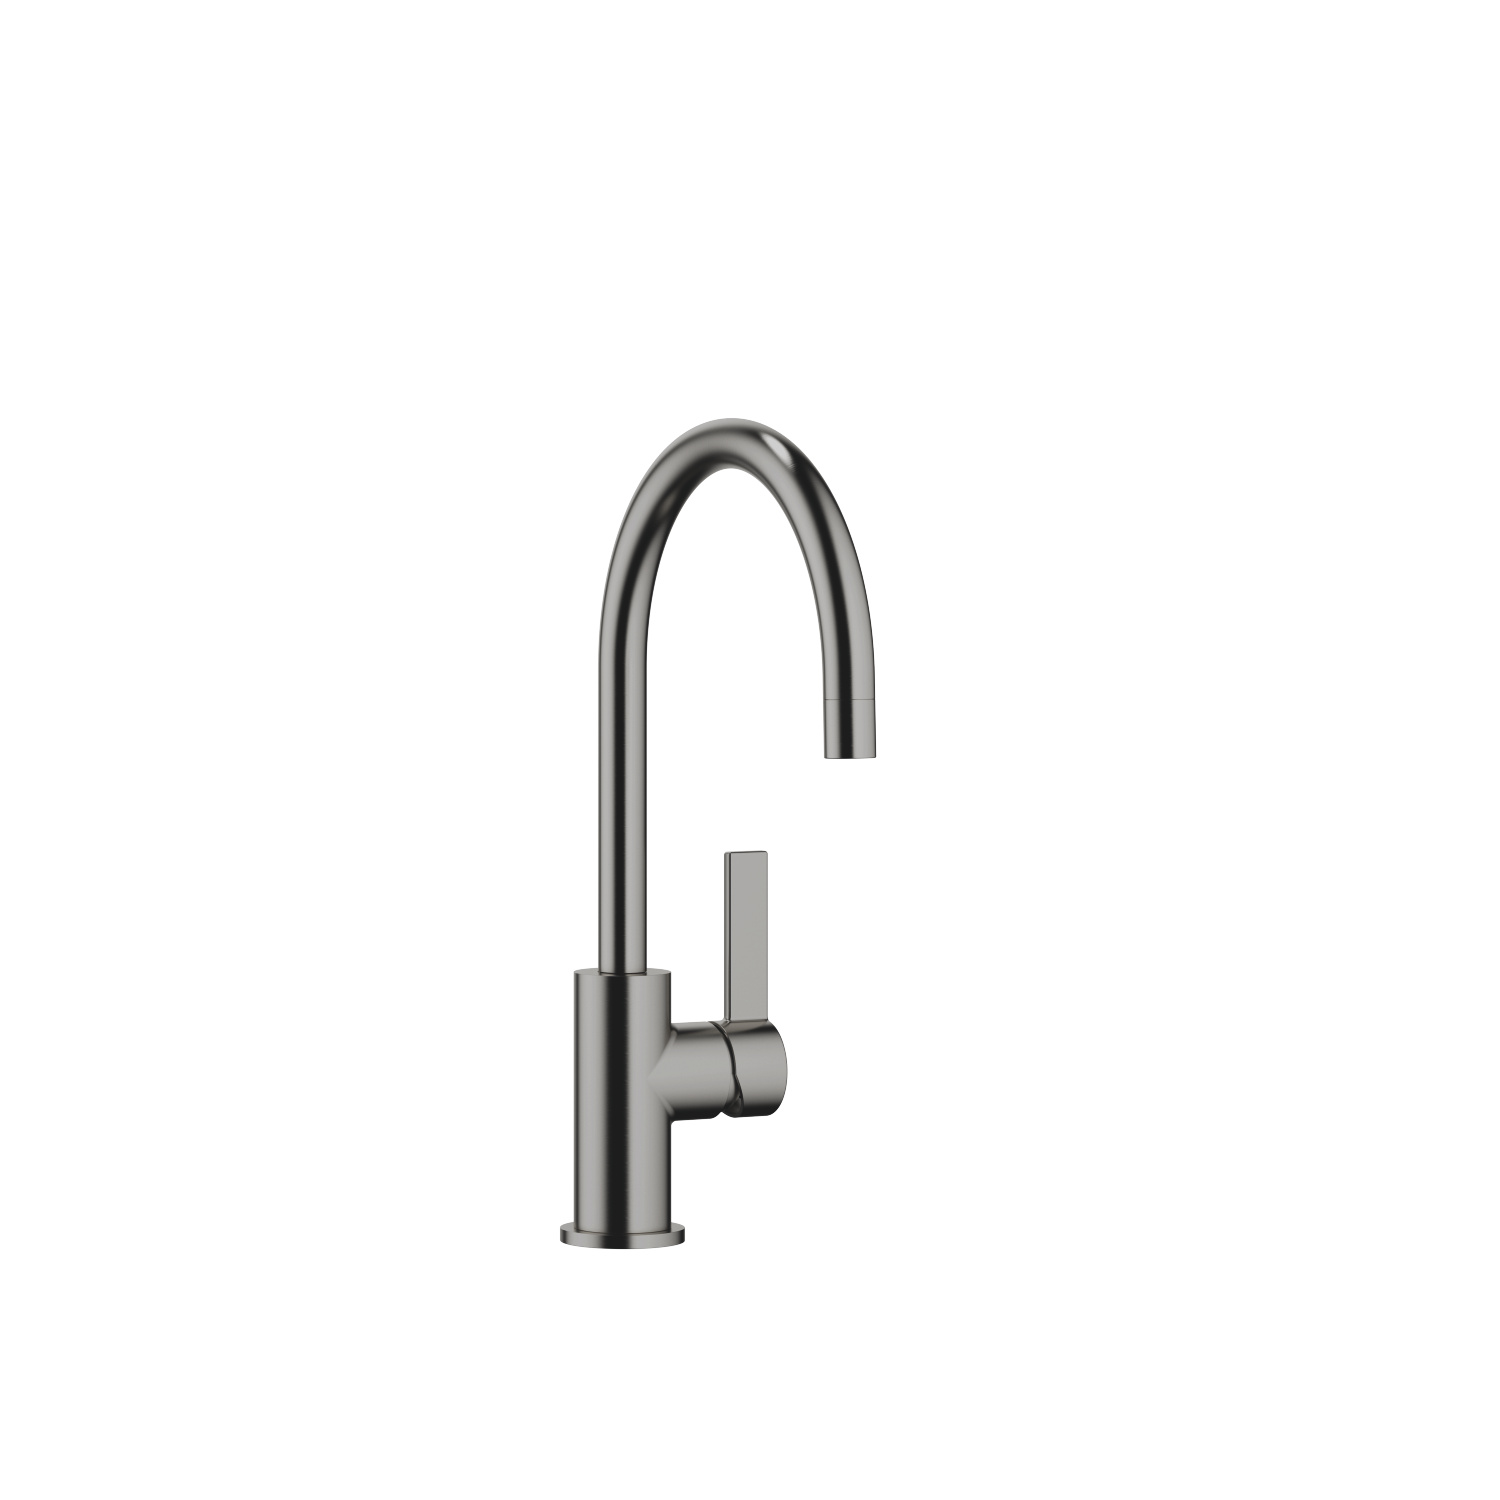 BAR TAP Single-lever mixer - Dark Platinum matt - 33 805 875-99